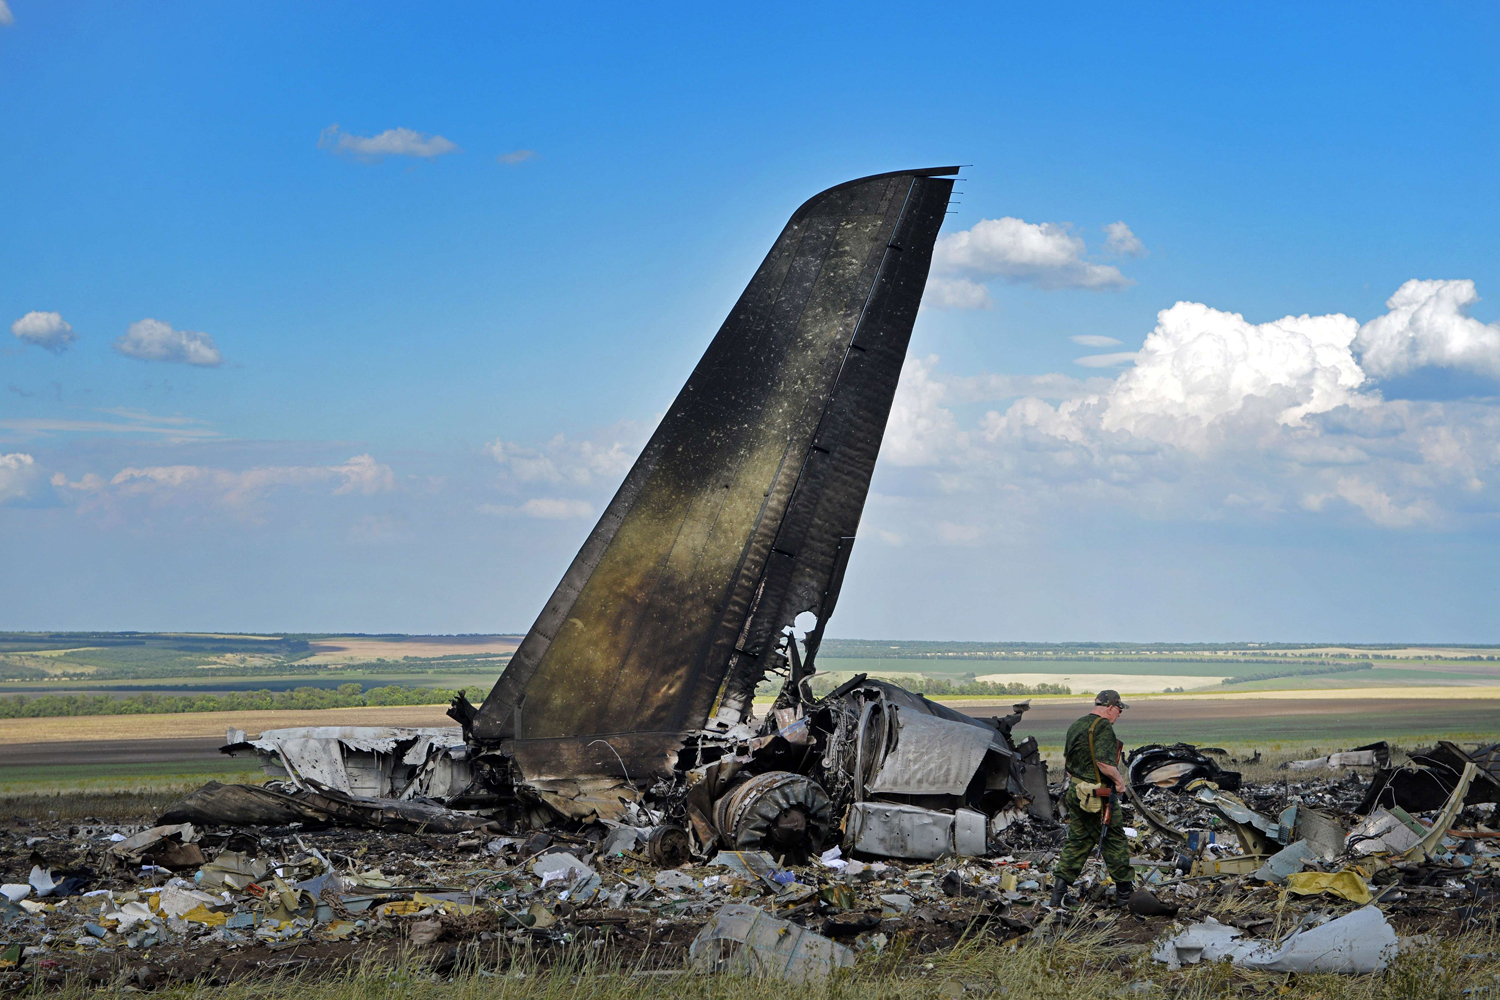 Jun. 14, 2014.Pro-Russian militants look through the debris of an IL-76 Ukrainian military transporter which was taken down by pro-Russian rebels early on June 14, on the outskirts of Lugansk.